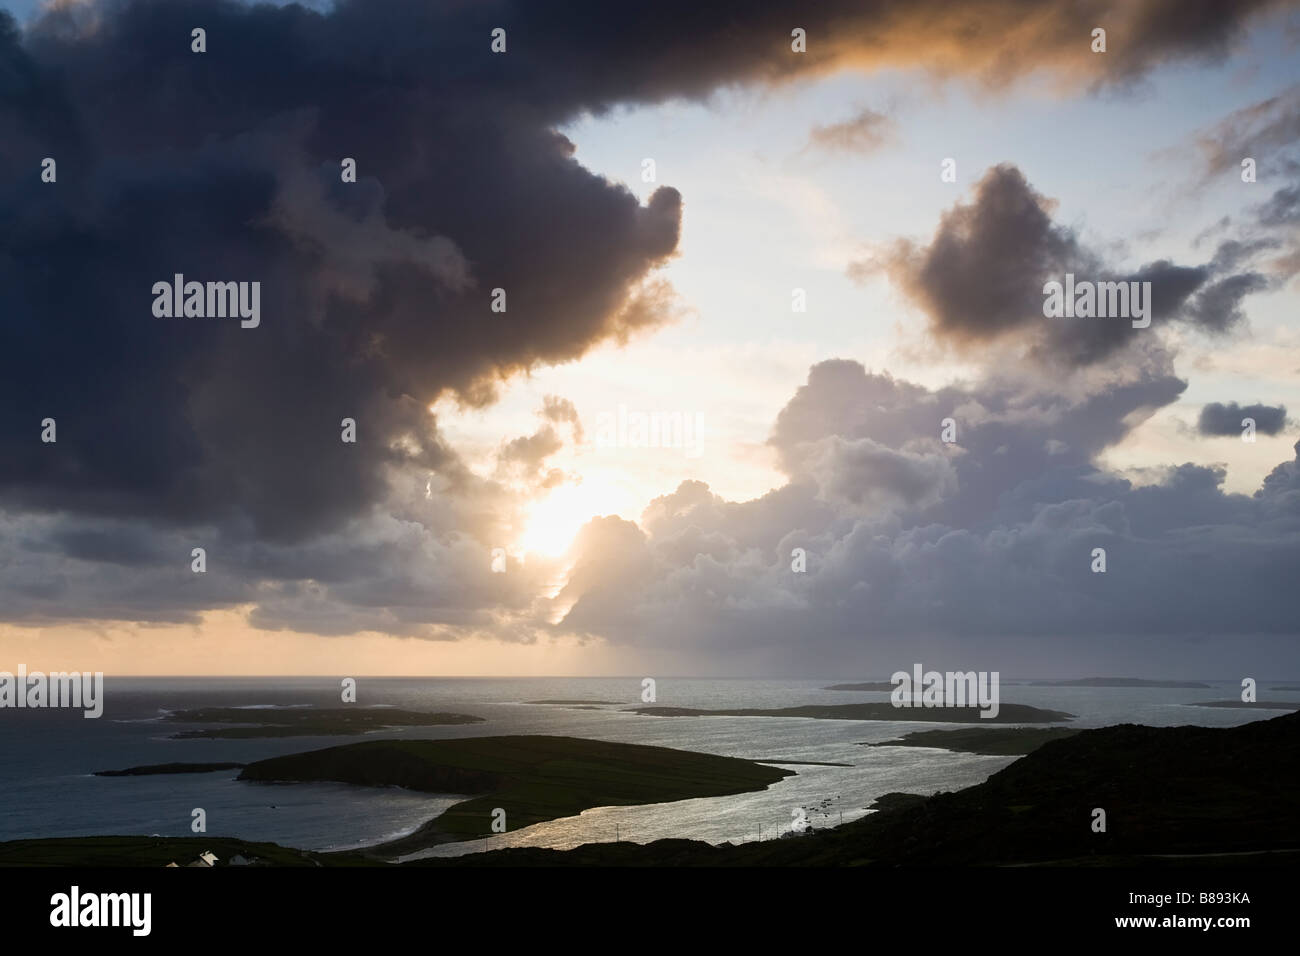 Dramatic Sunset over the County Galway Coastline and the Islands of the West of Ireland near the town of Clifden, Stock Photo